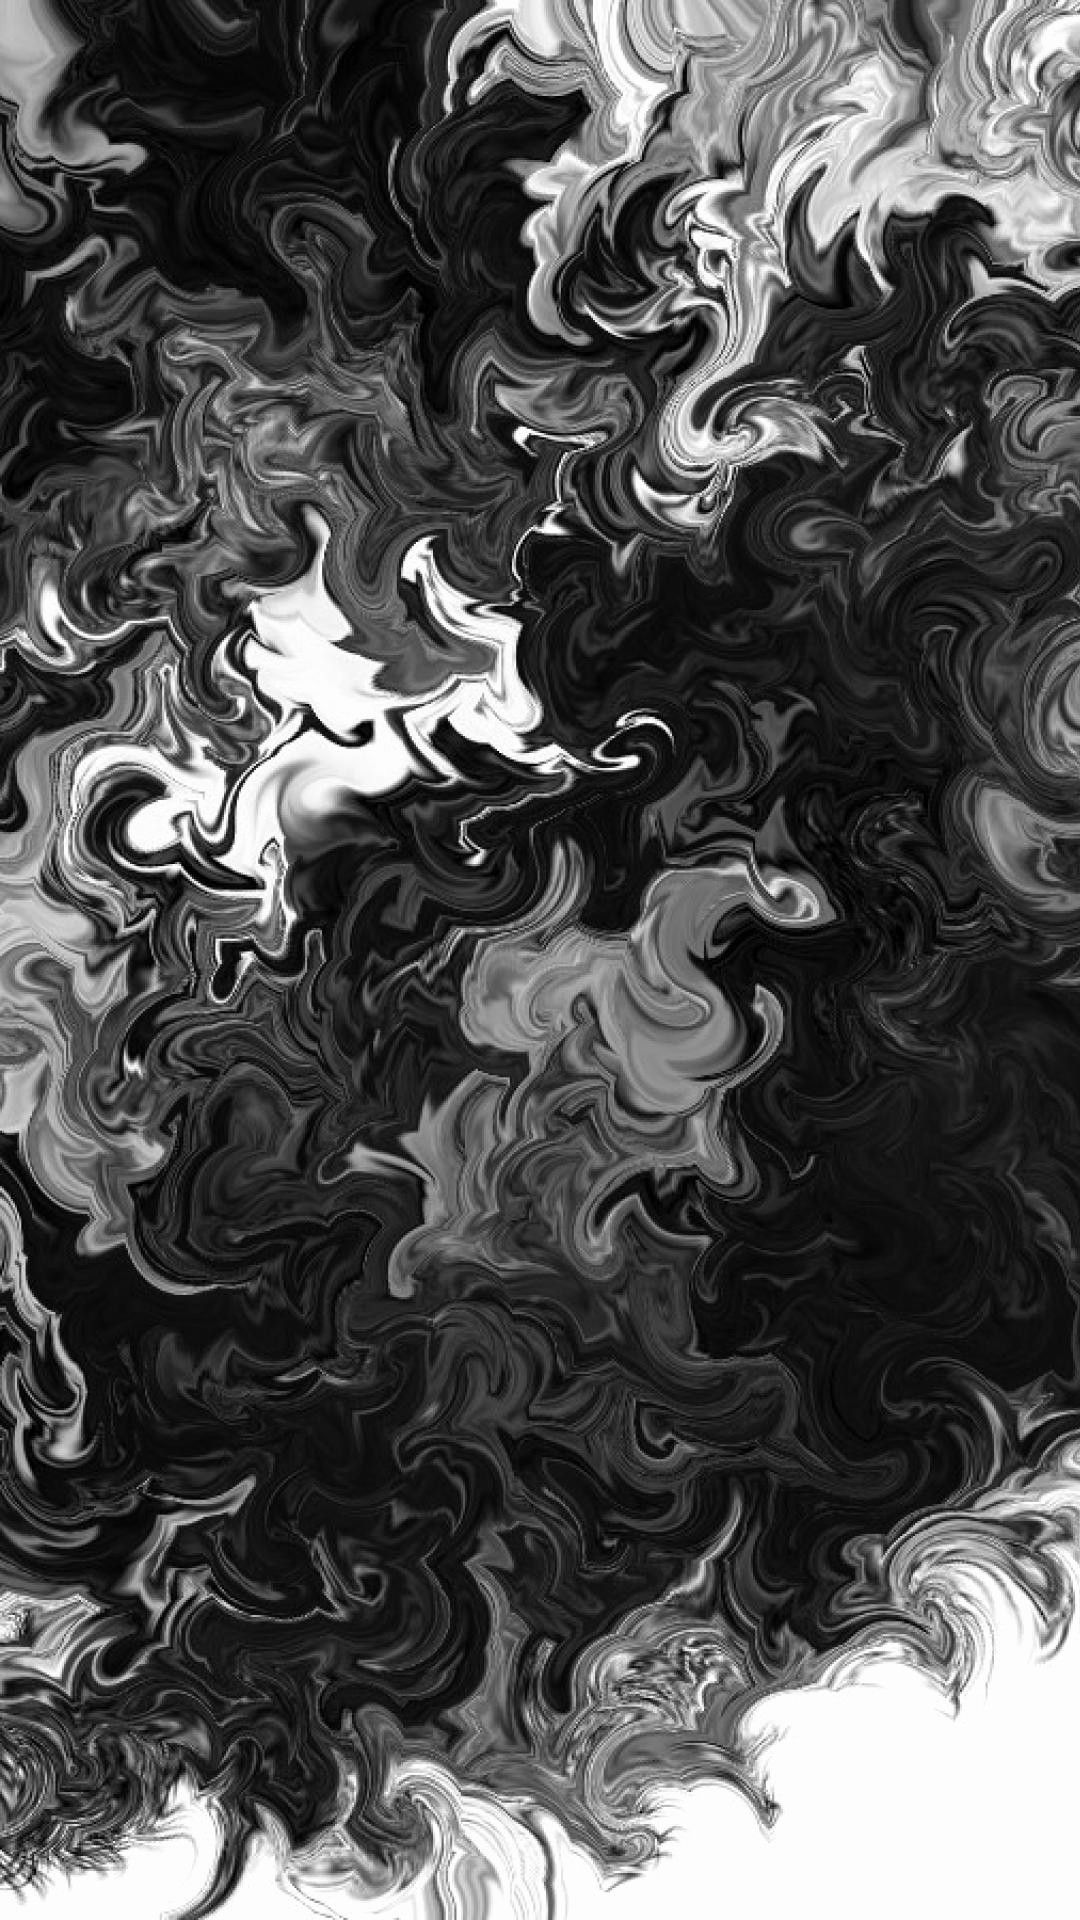 Https All Images Net Cool Abstract Wallpaper For Iphone X2 Black And White I Black And White Wallpaper Iphone White Wallpaper For Iphone Gold Wallpaper Phone